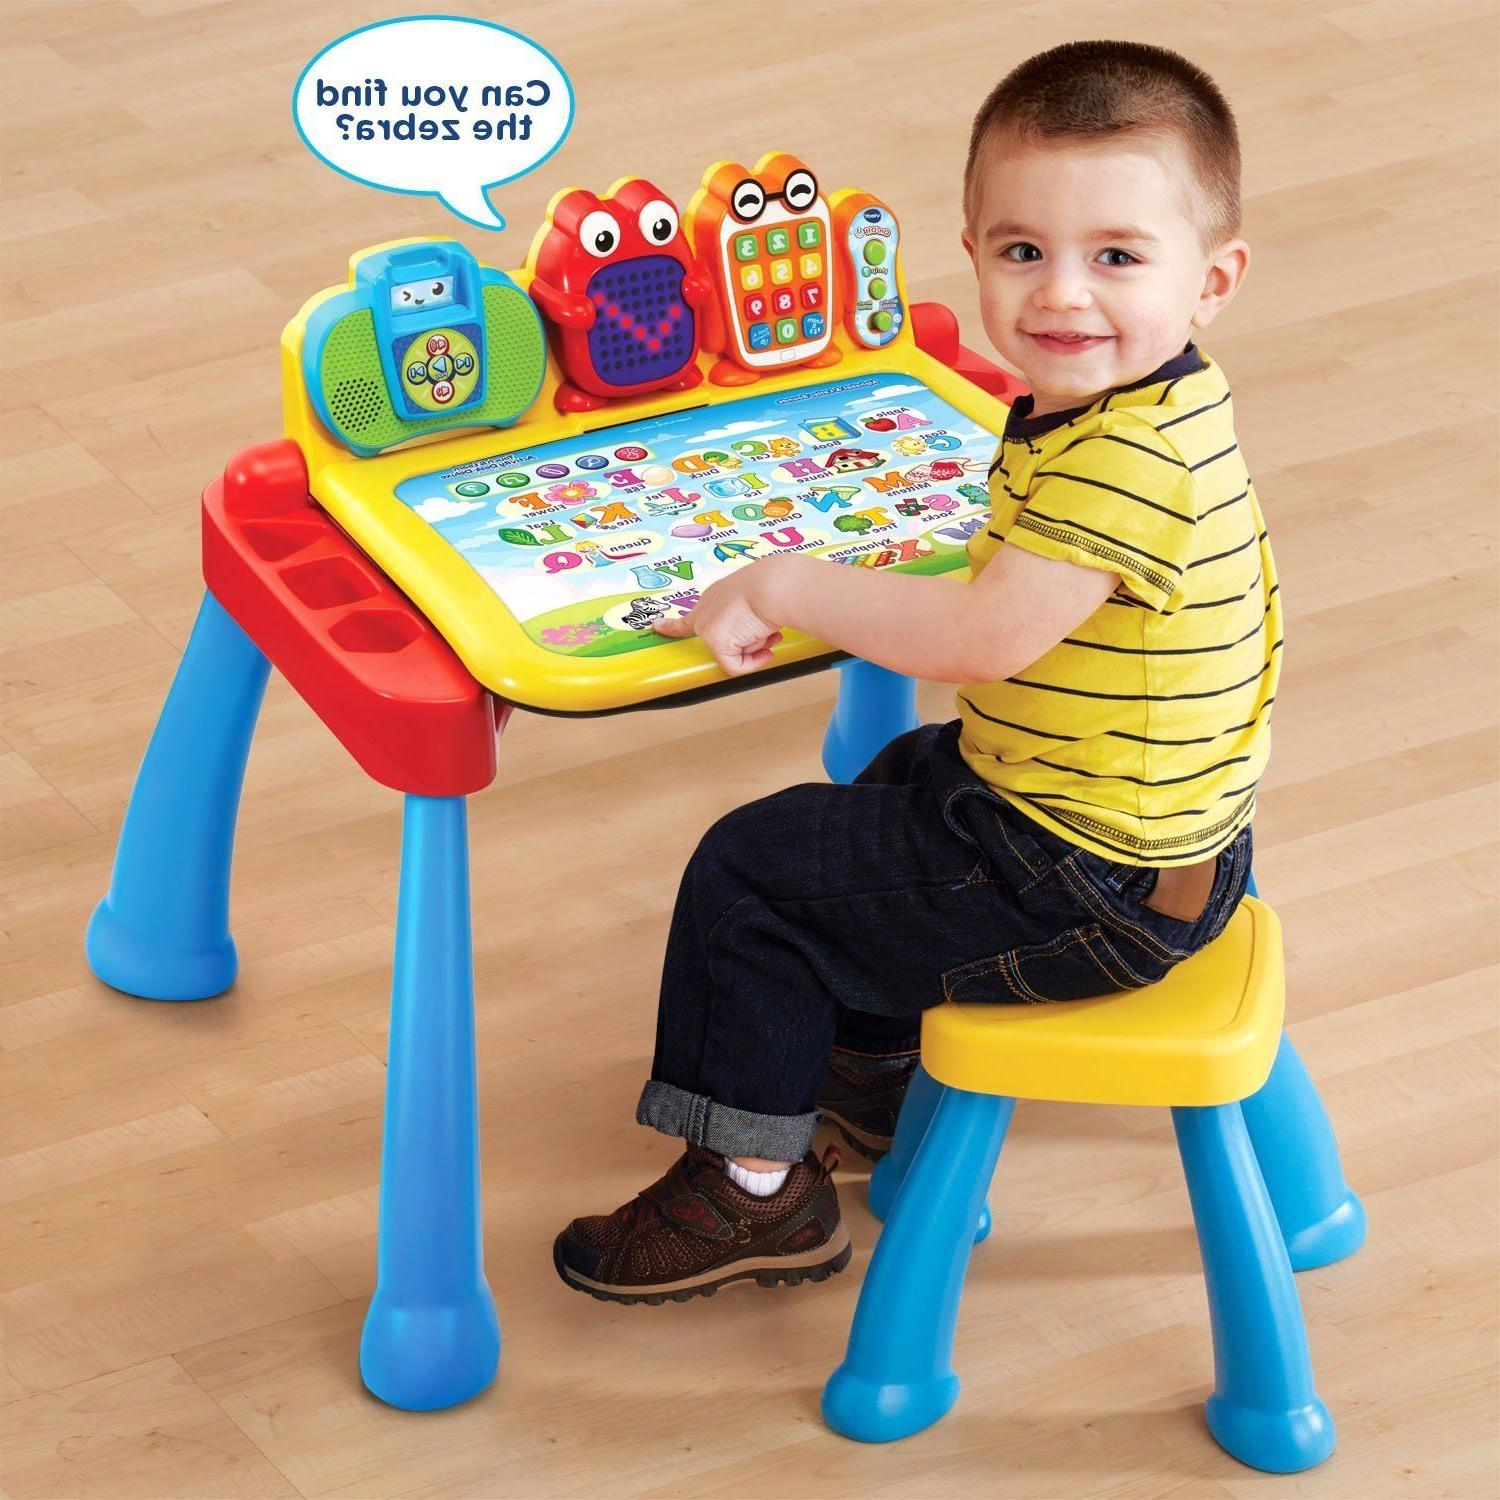 Kids Toys- VTech Activity Desk™ Delu & Cube,Blocks,Learning